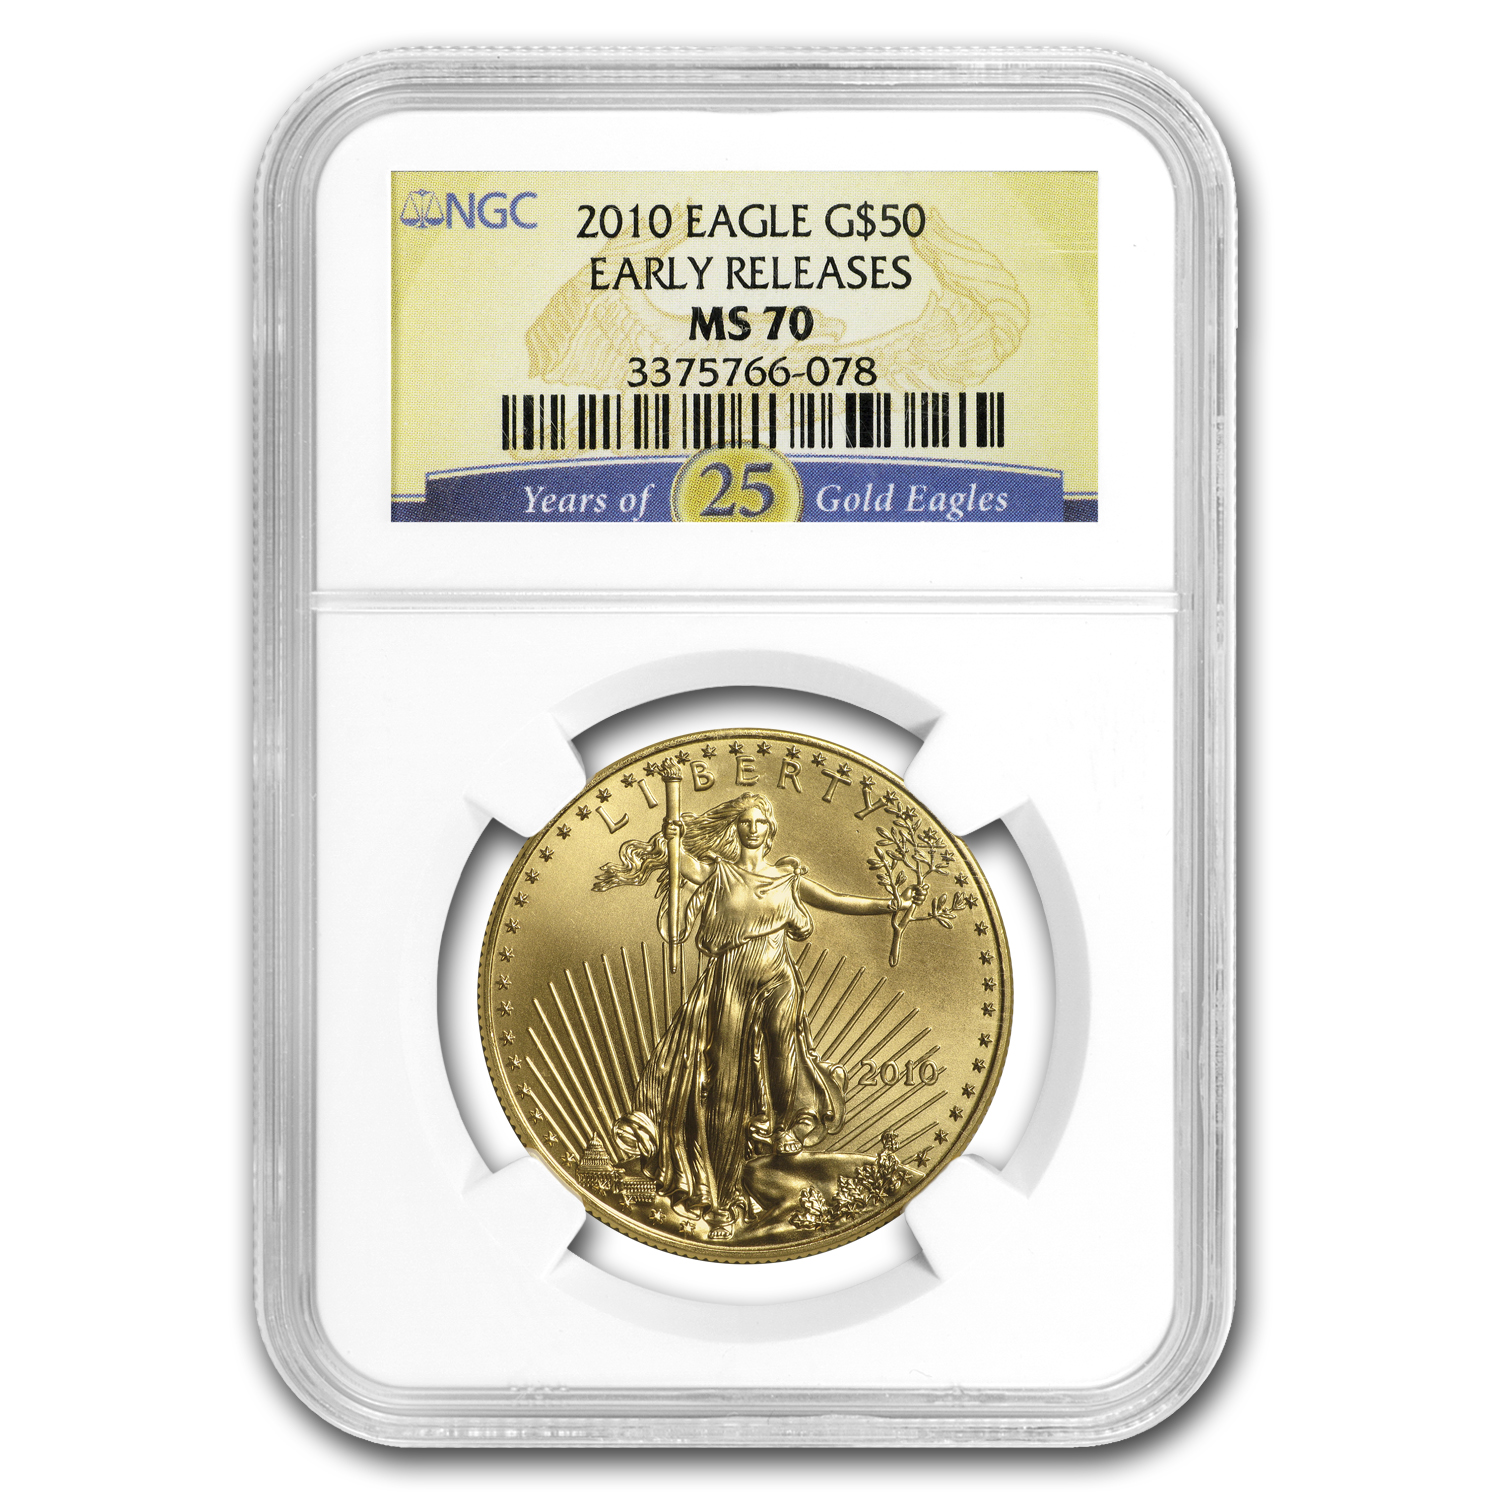 2010 1 oz Gold American Eagle MS-70 NGC 25 Years (Early Releases)